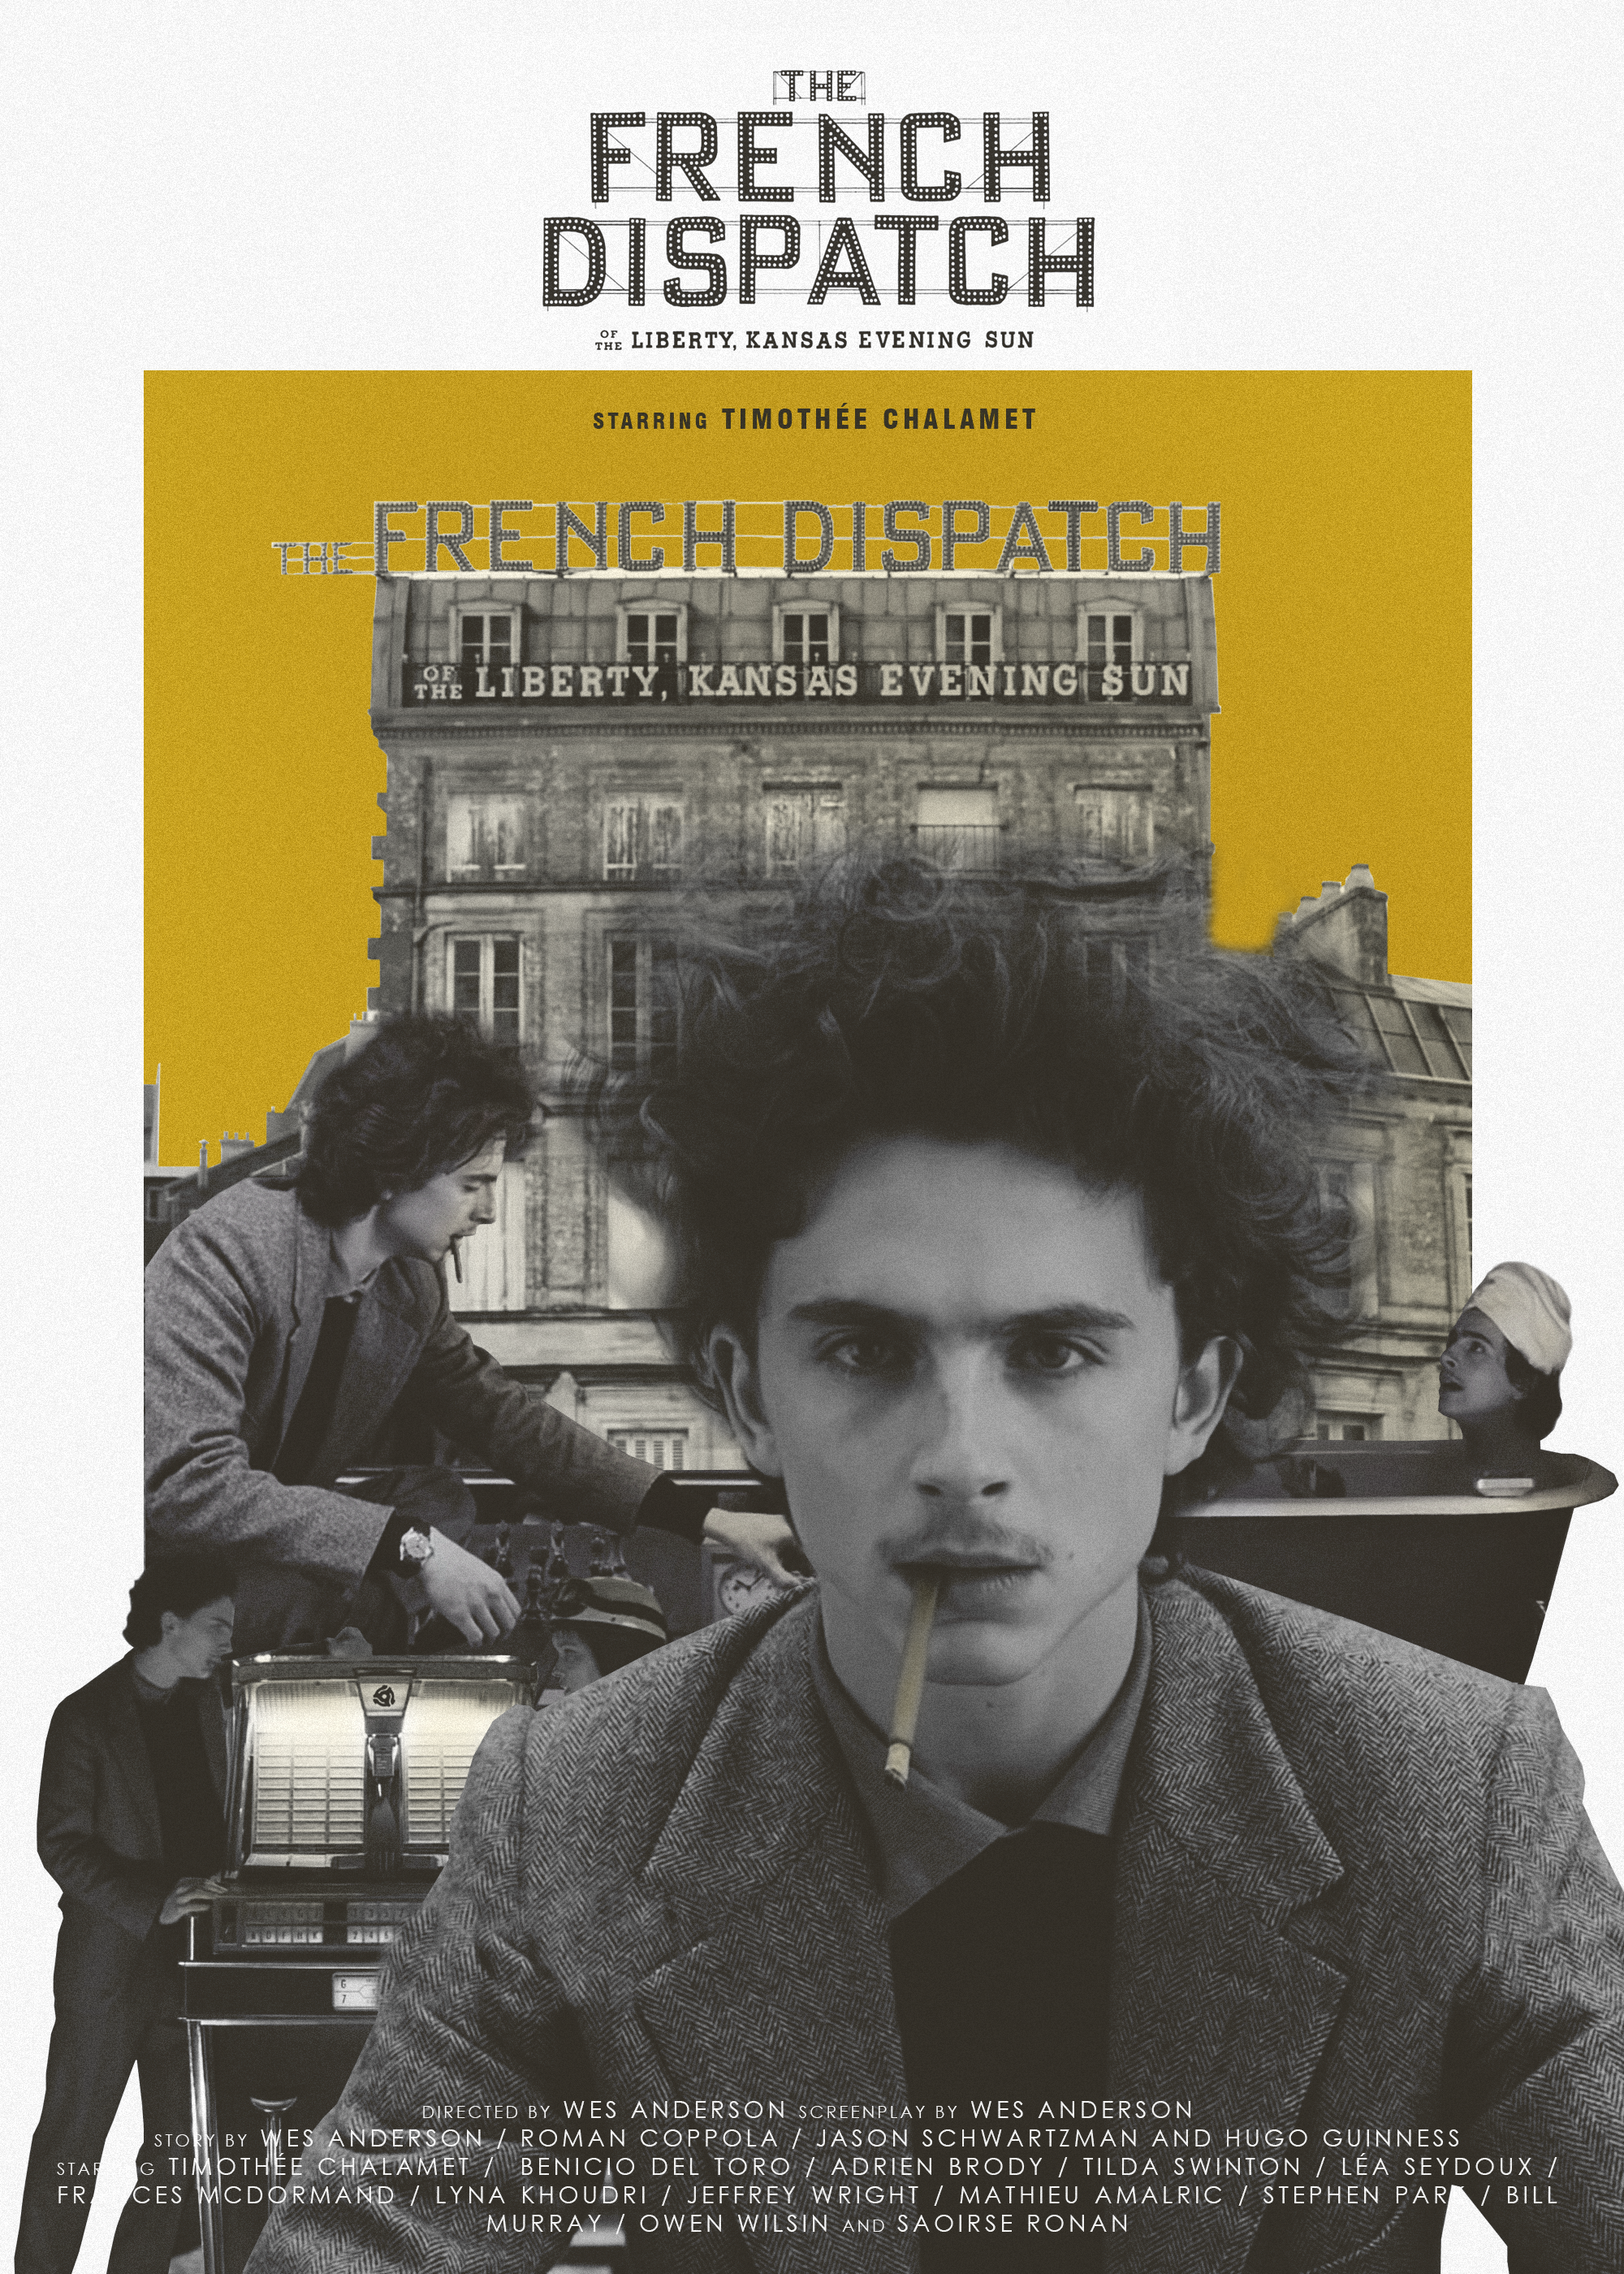 The French Dispatch - Movie poster | Timothee chalamet, Movie posters, Wes  anderson films